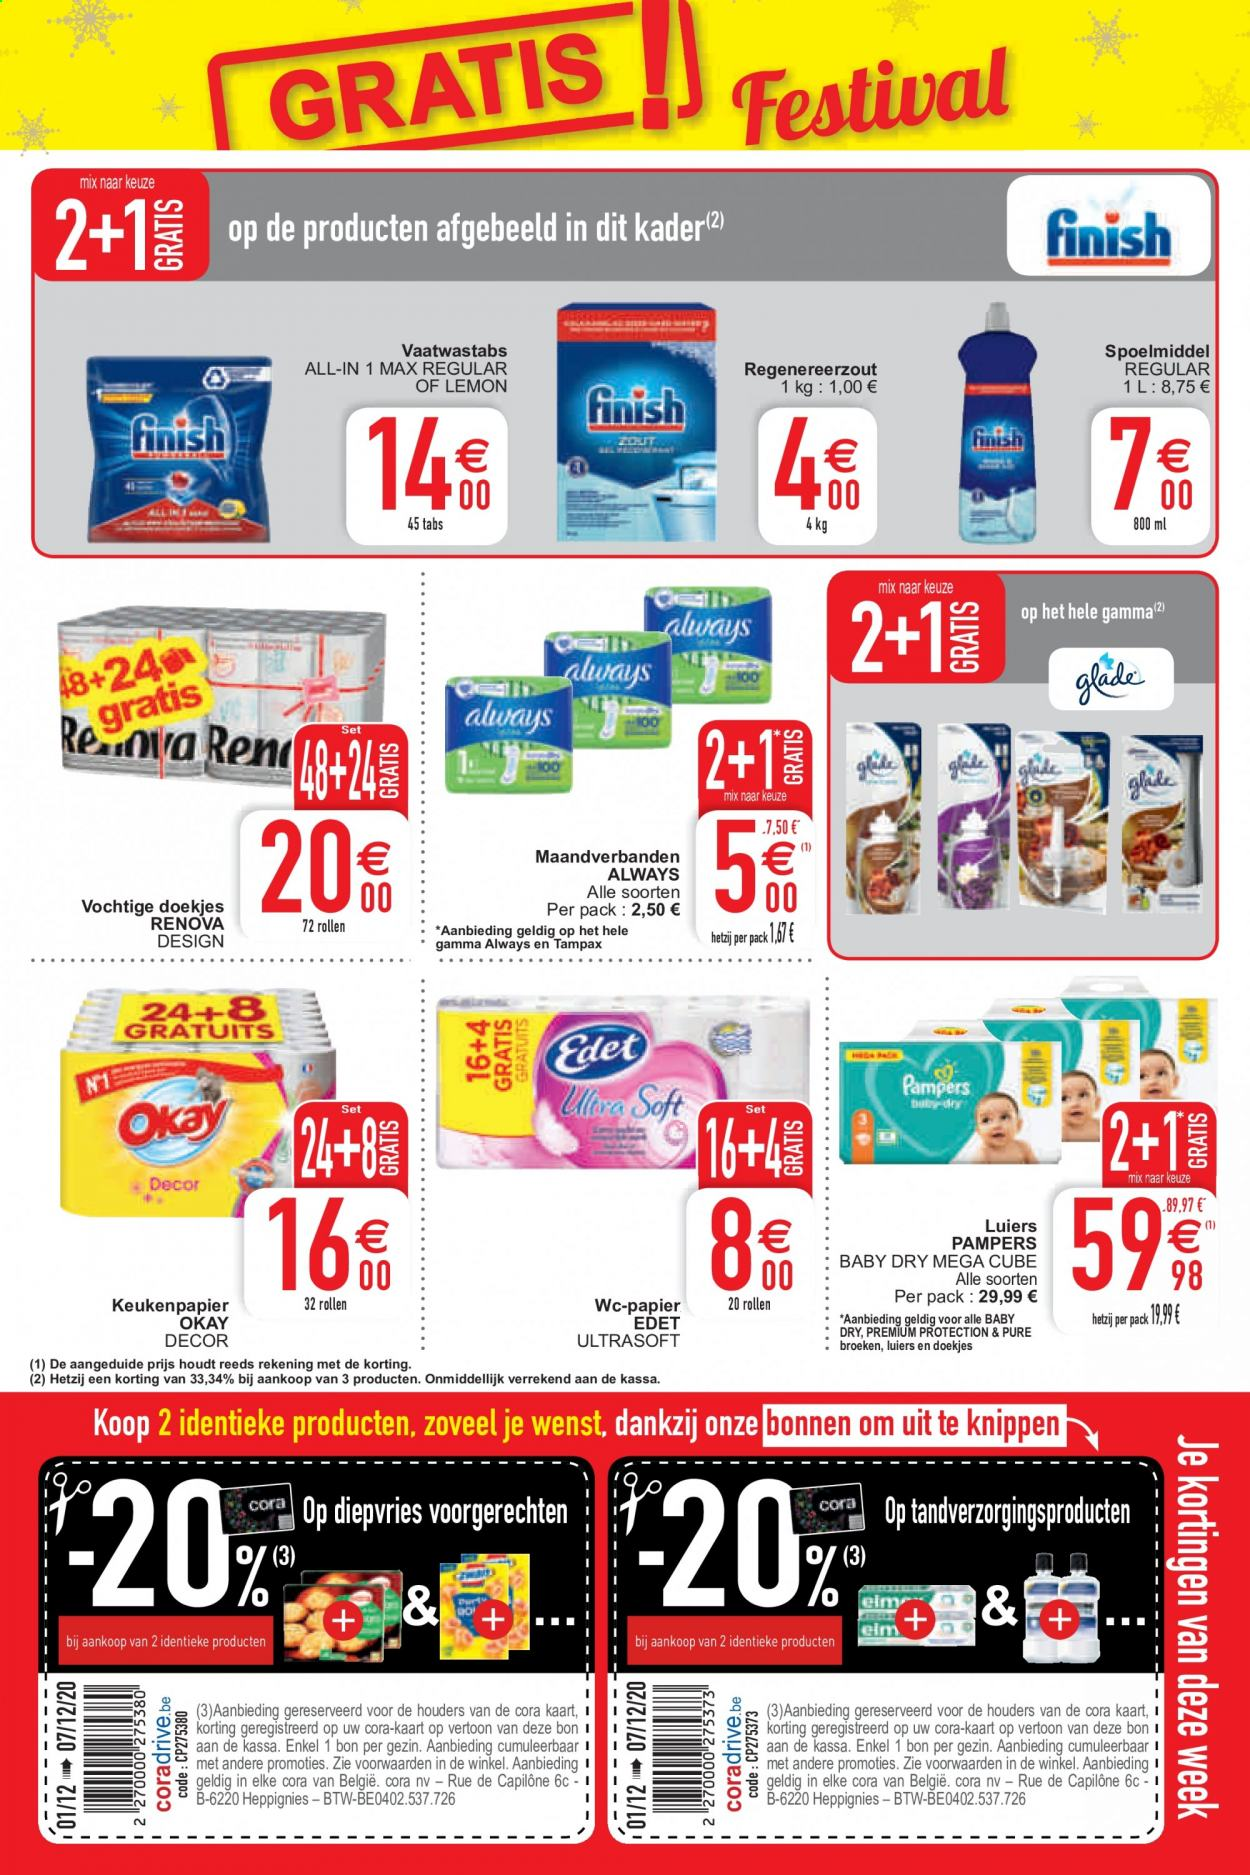 Catalogue Cora - 1.12.2020 - 7.12.2020 - Produits soldés - always, tampax, pampers. Page 3.